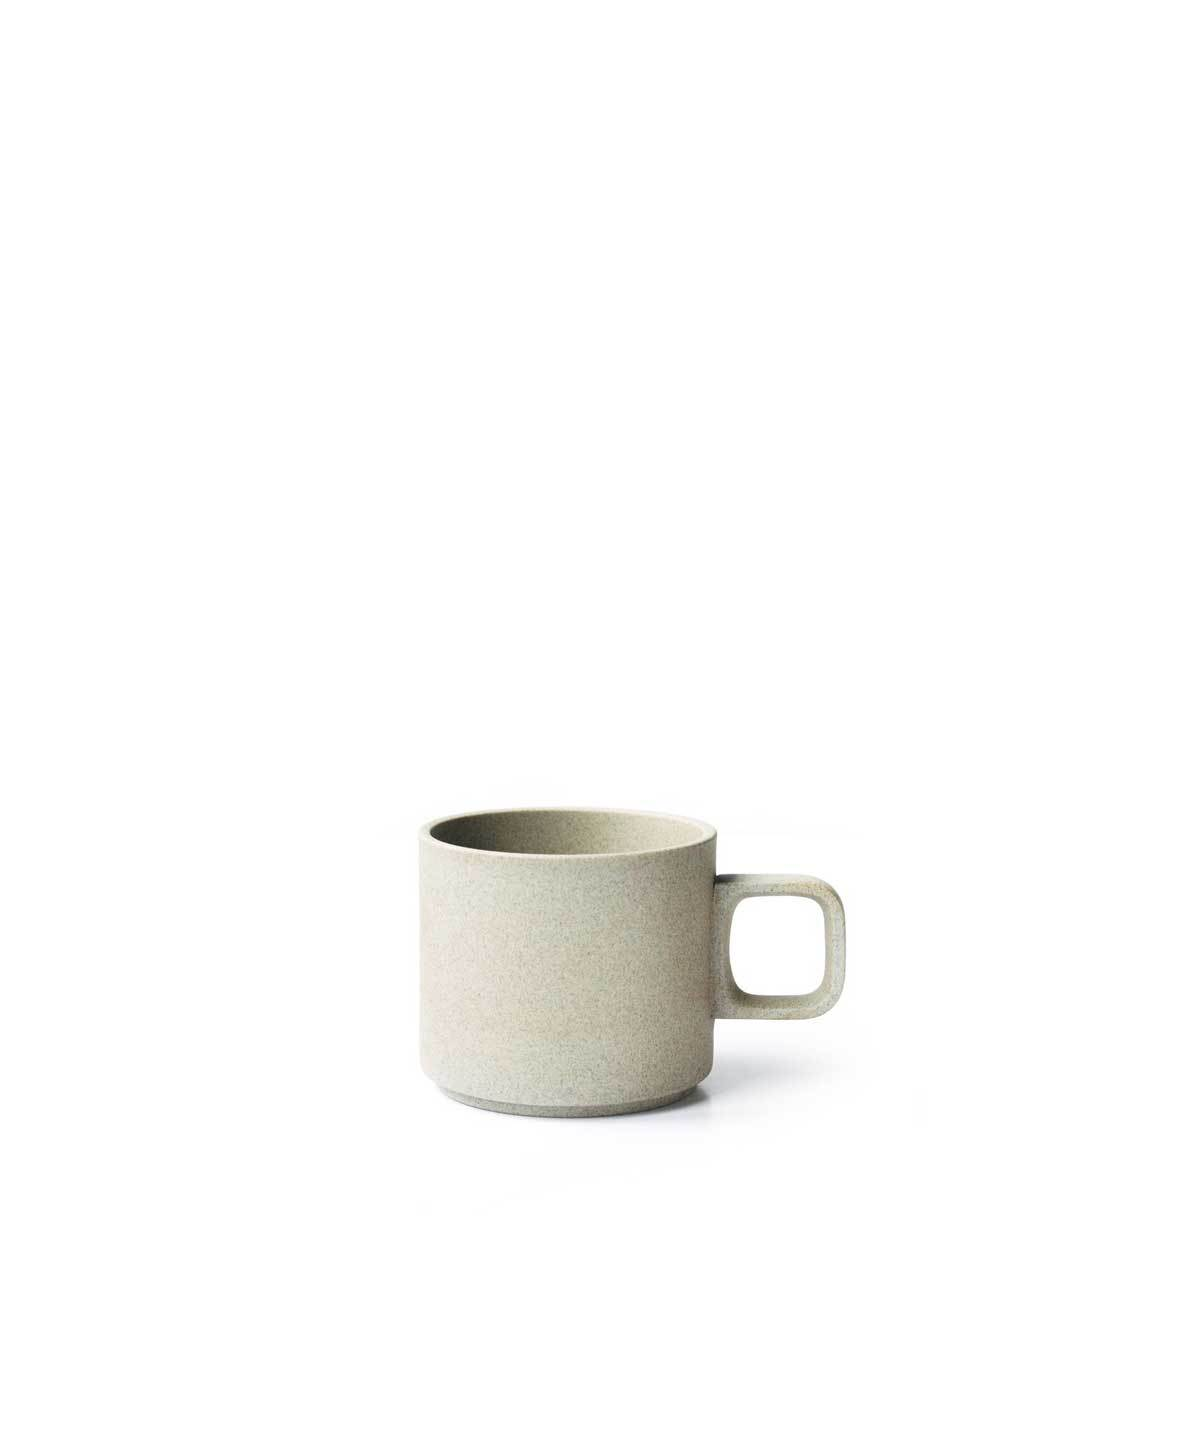 Unglazed Japanese Porcelain Mug